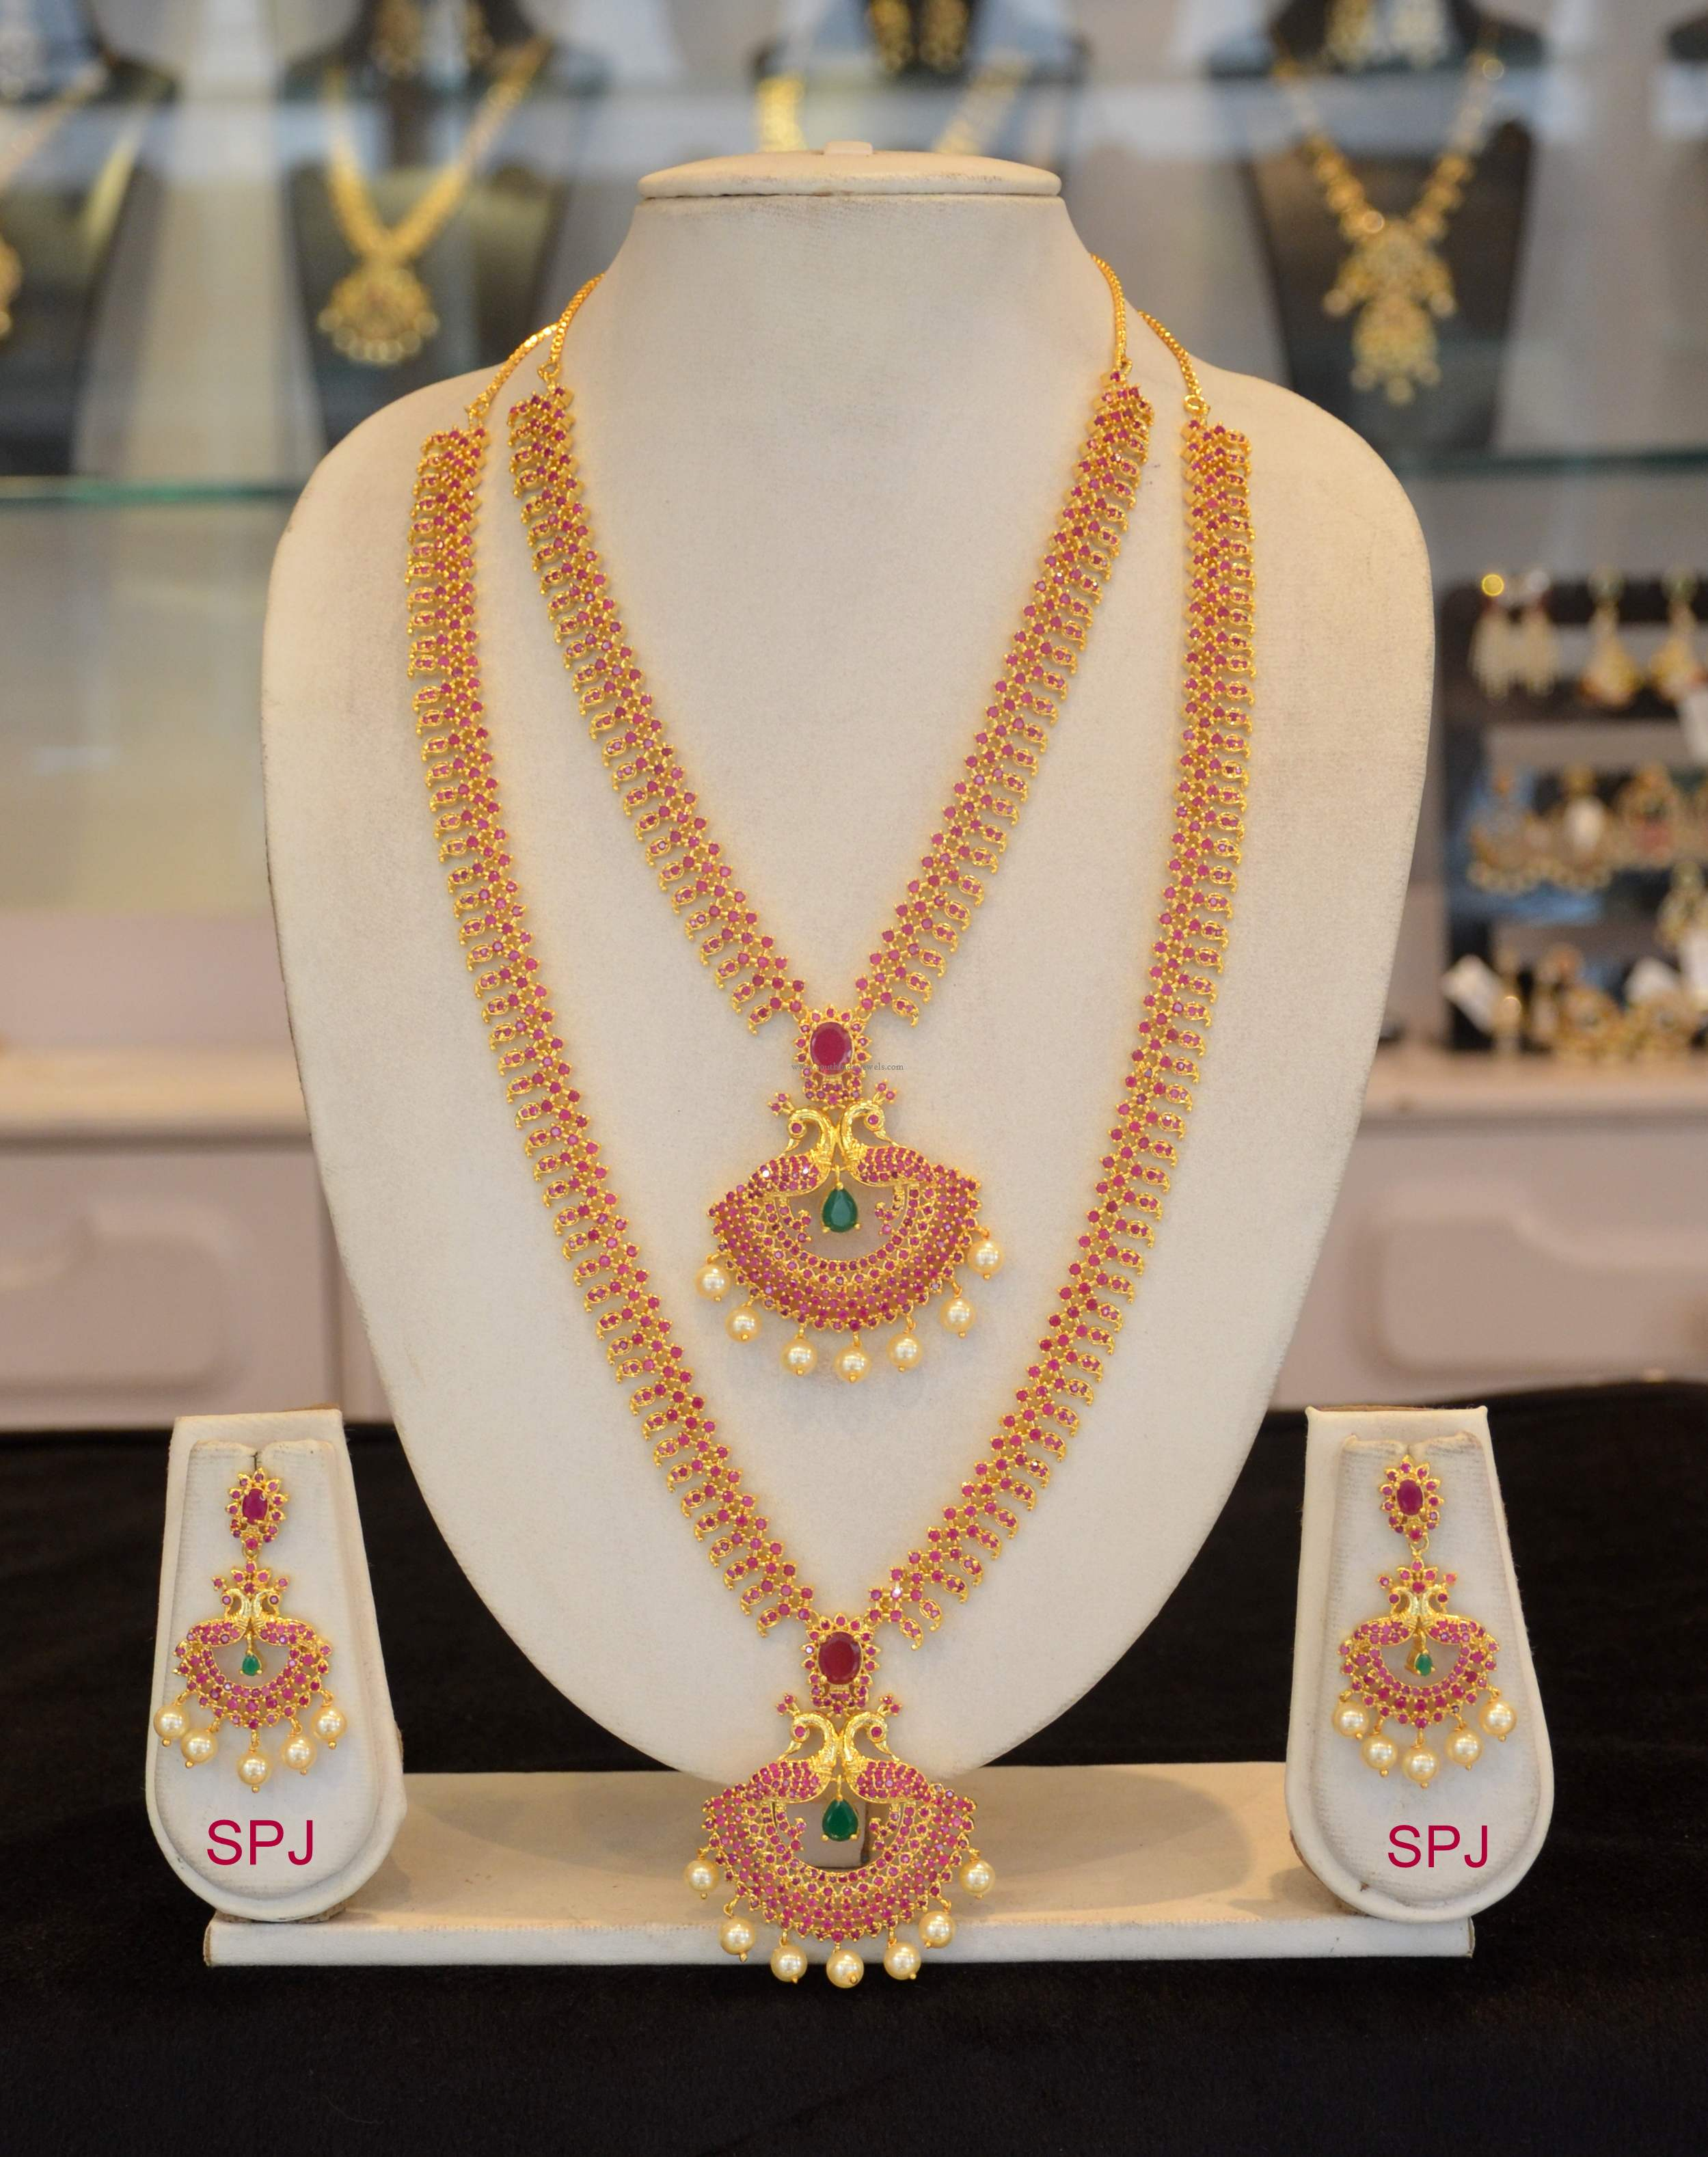 jewel jewellery necklace earrings set ishine products earring